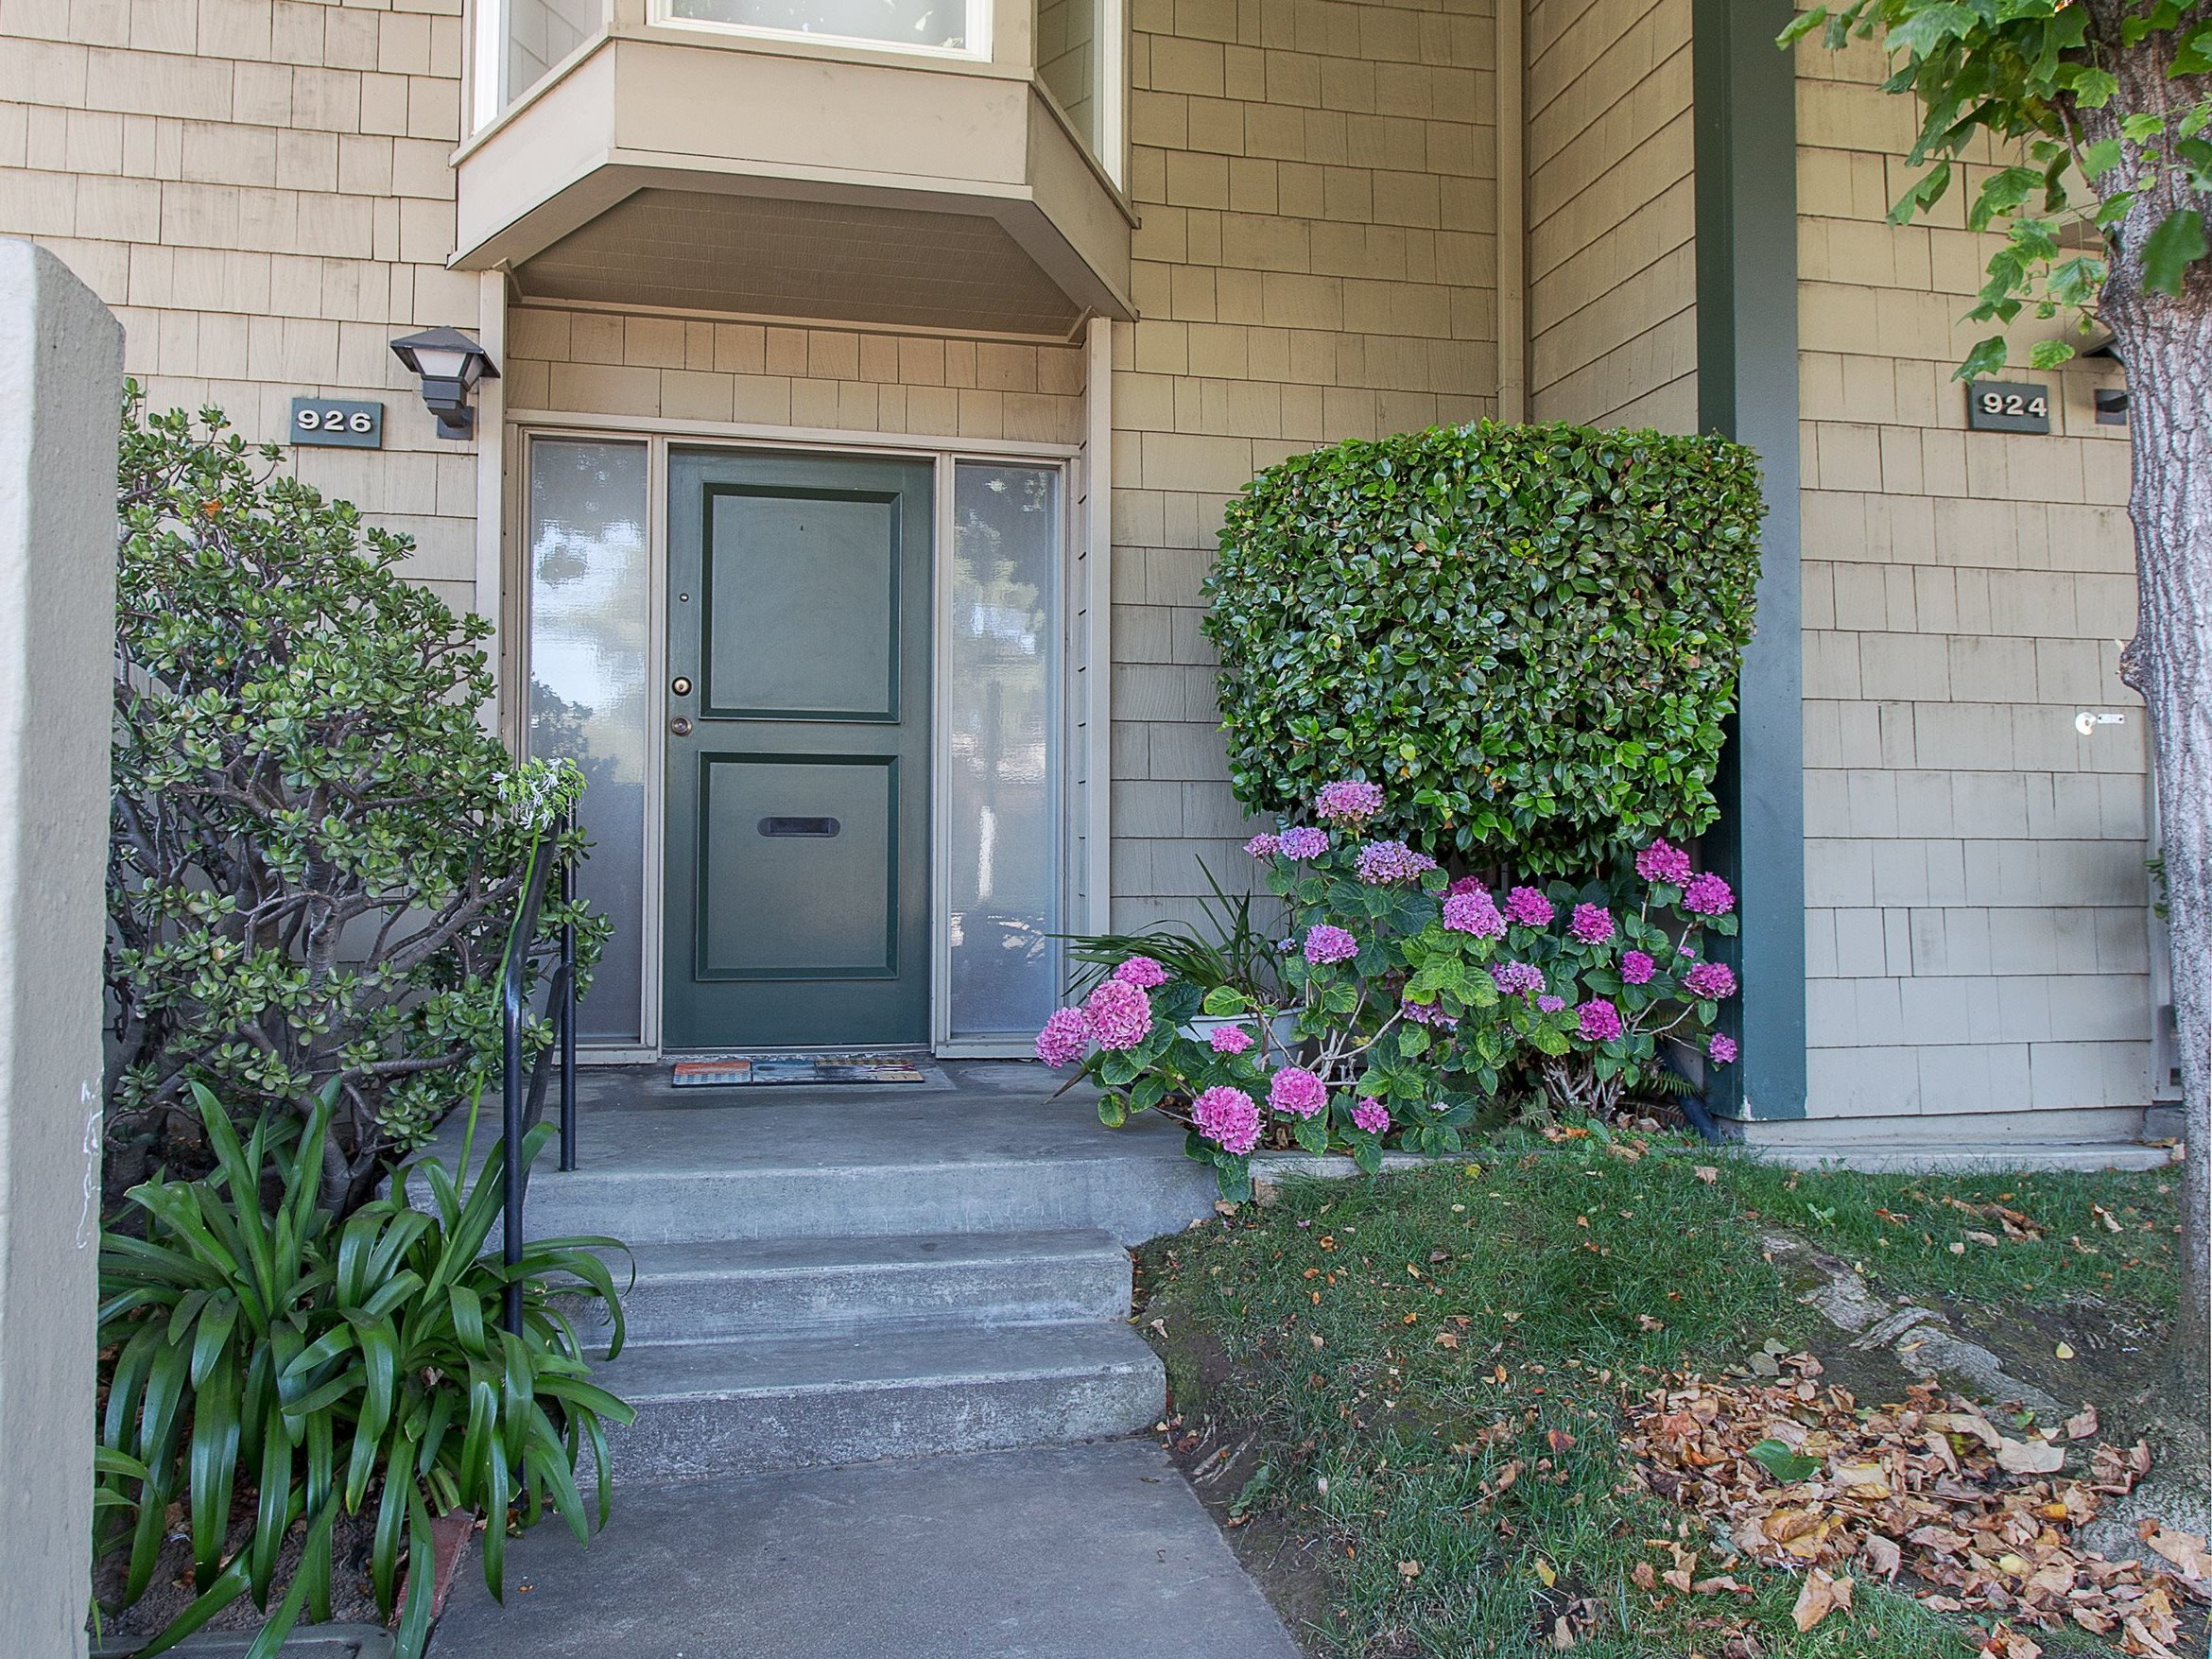 Property For Sale at 926 Peninsula, San Mateo